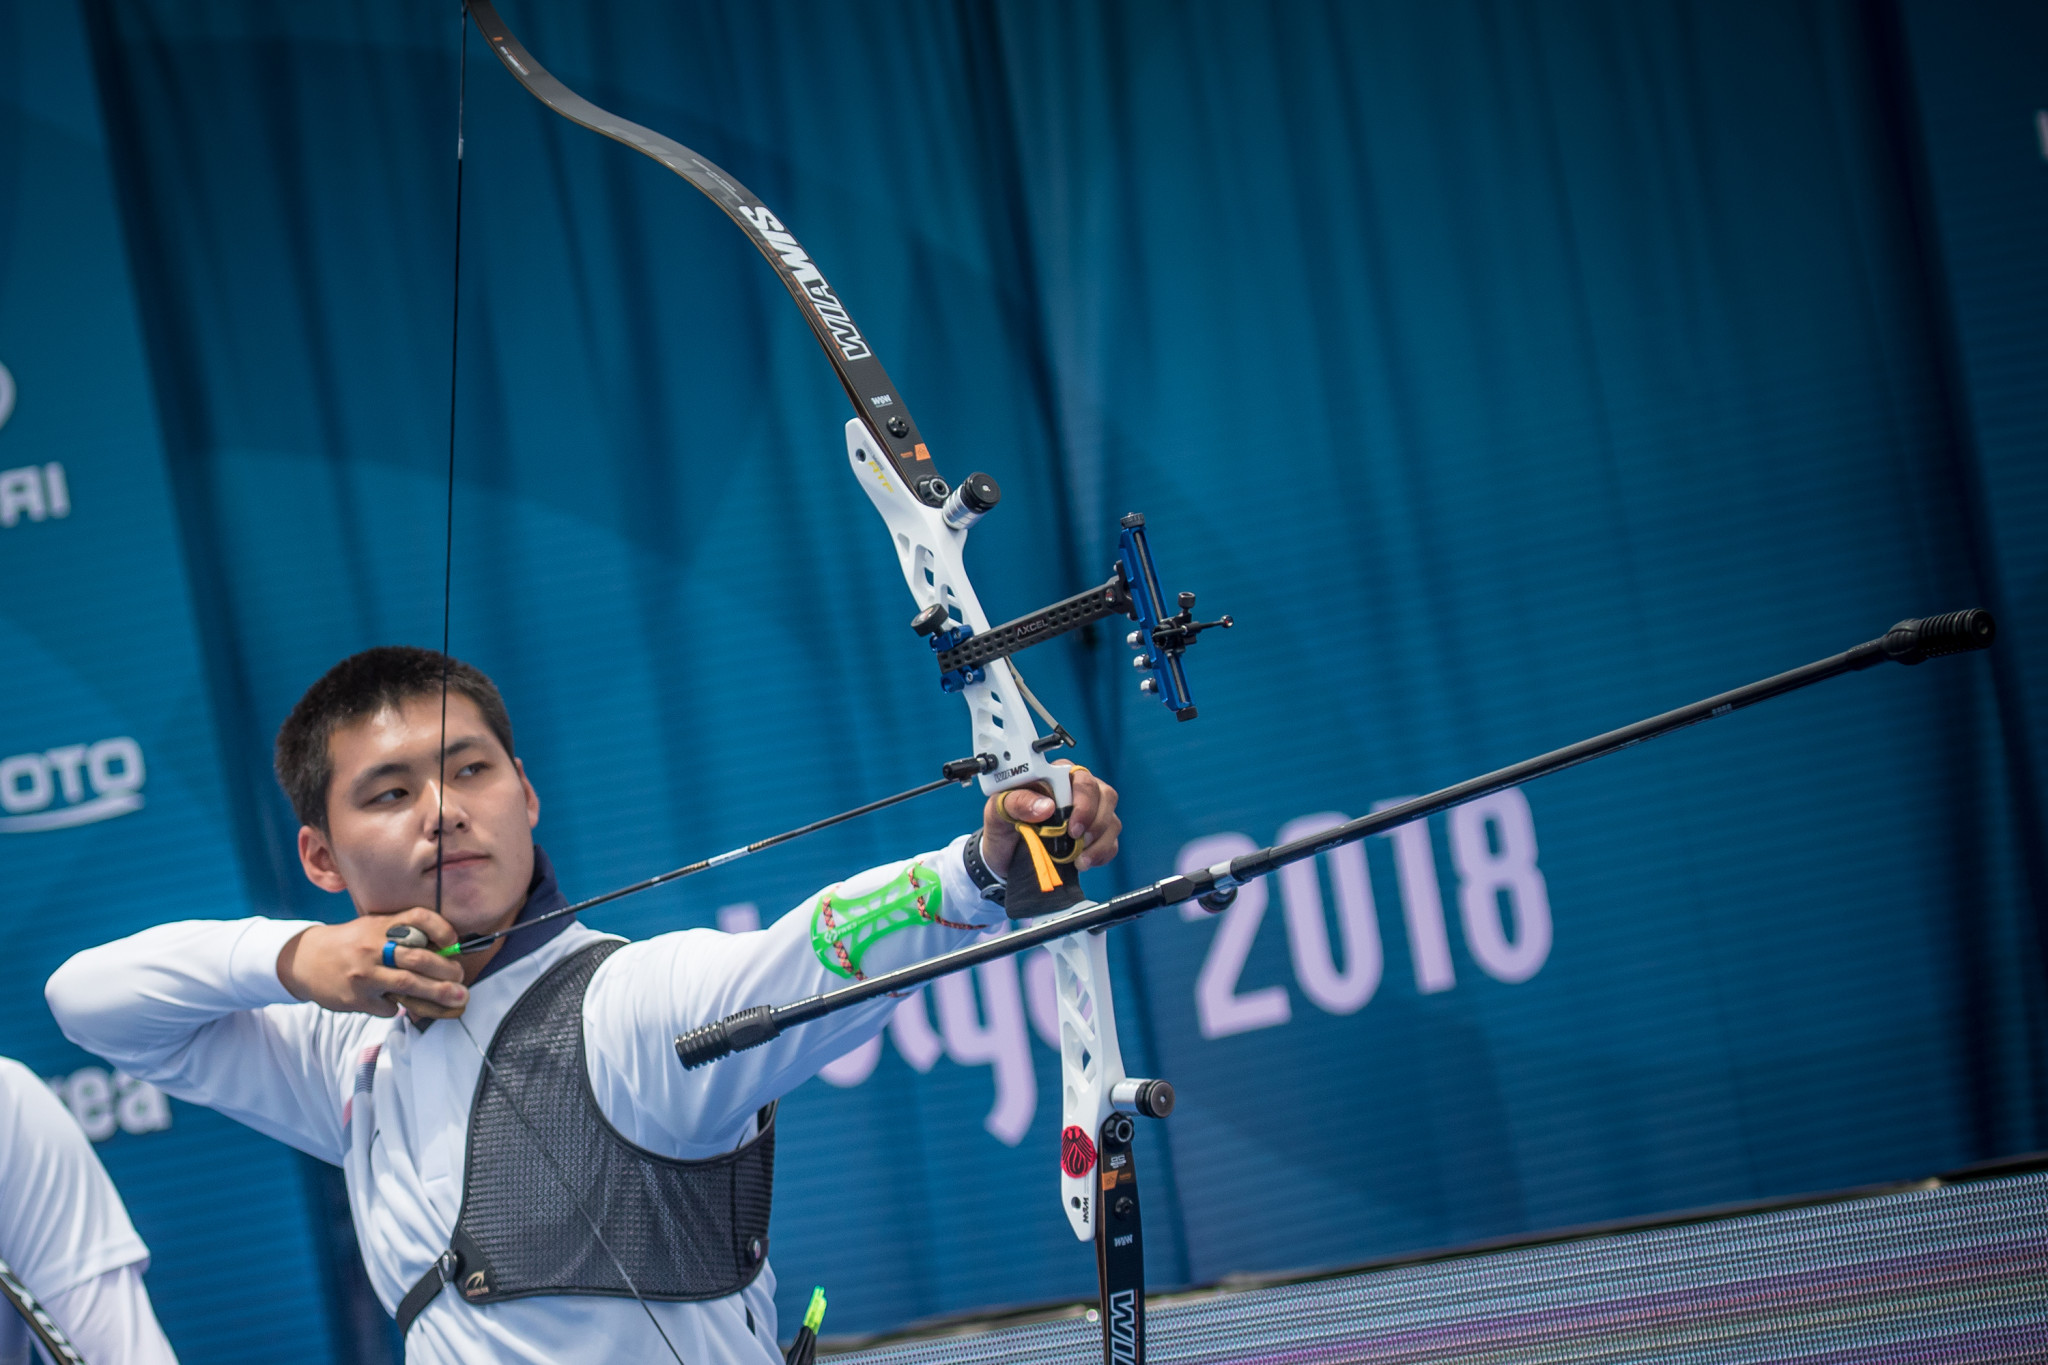 Antalya set to host first archery world ranking event since the pandemic